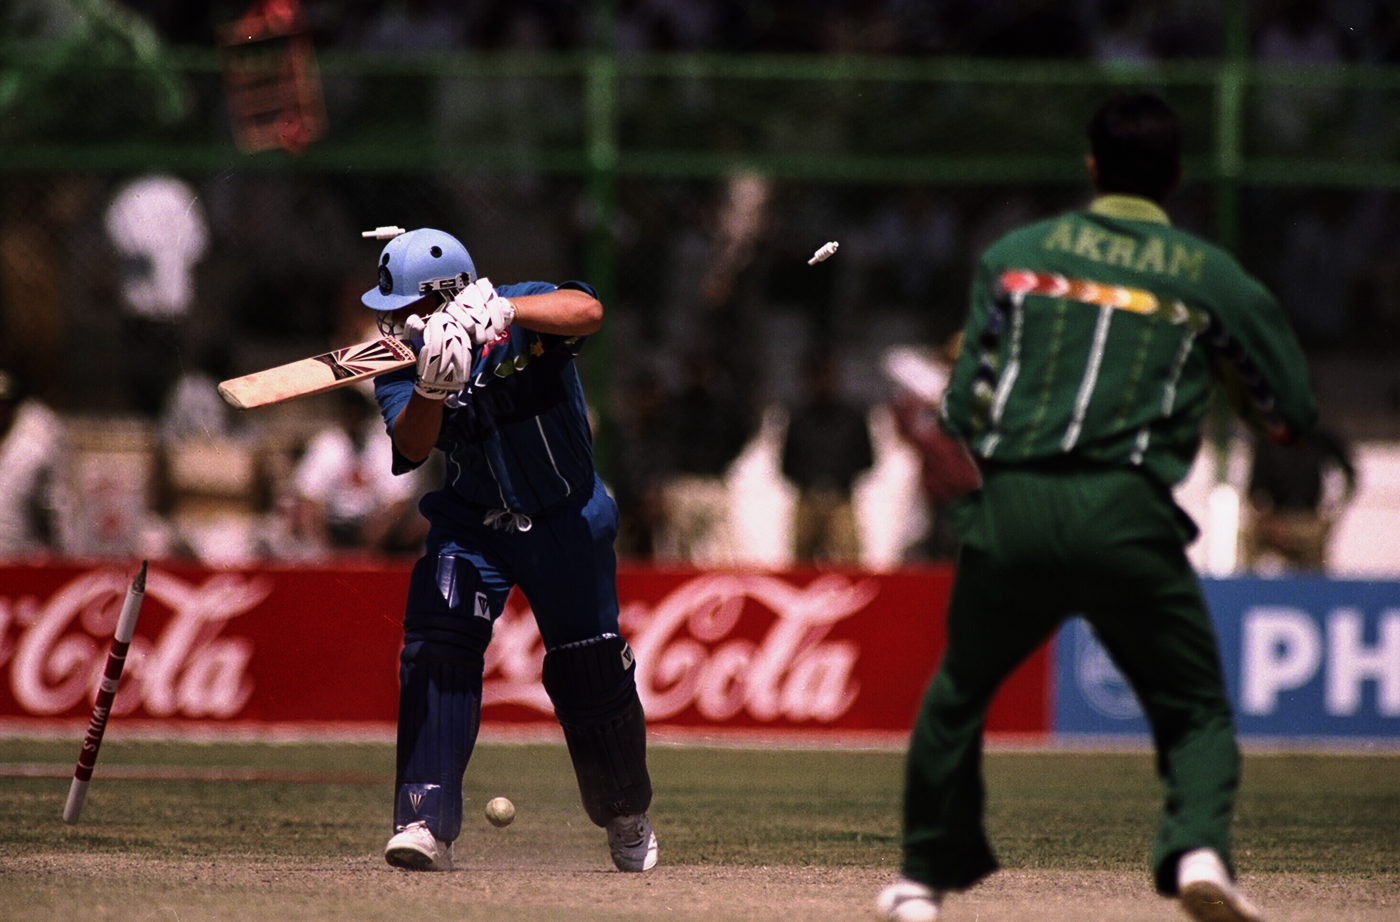 And how about his atrocious treatment of cricket stumps?